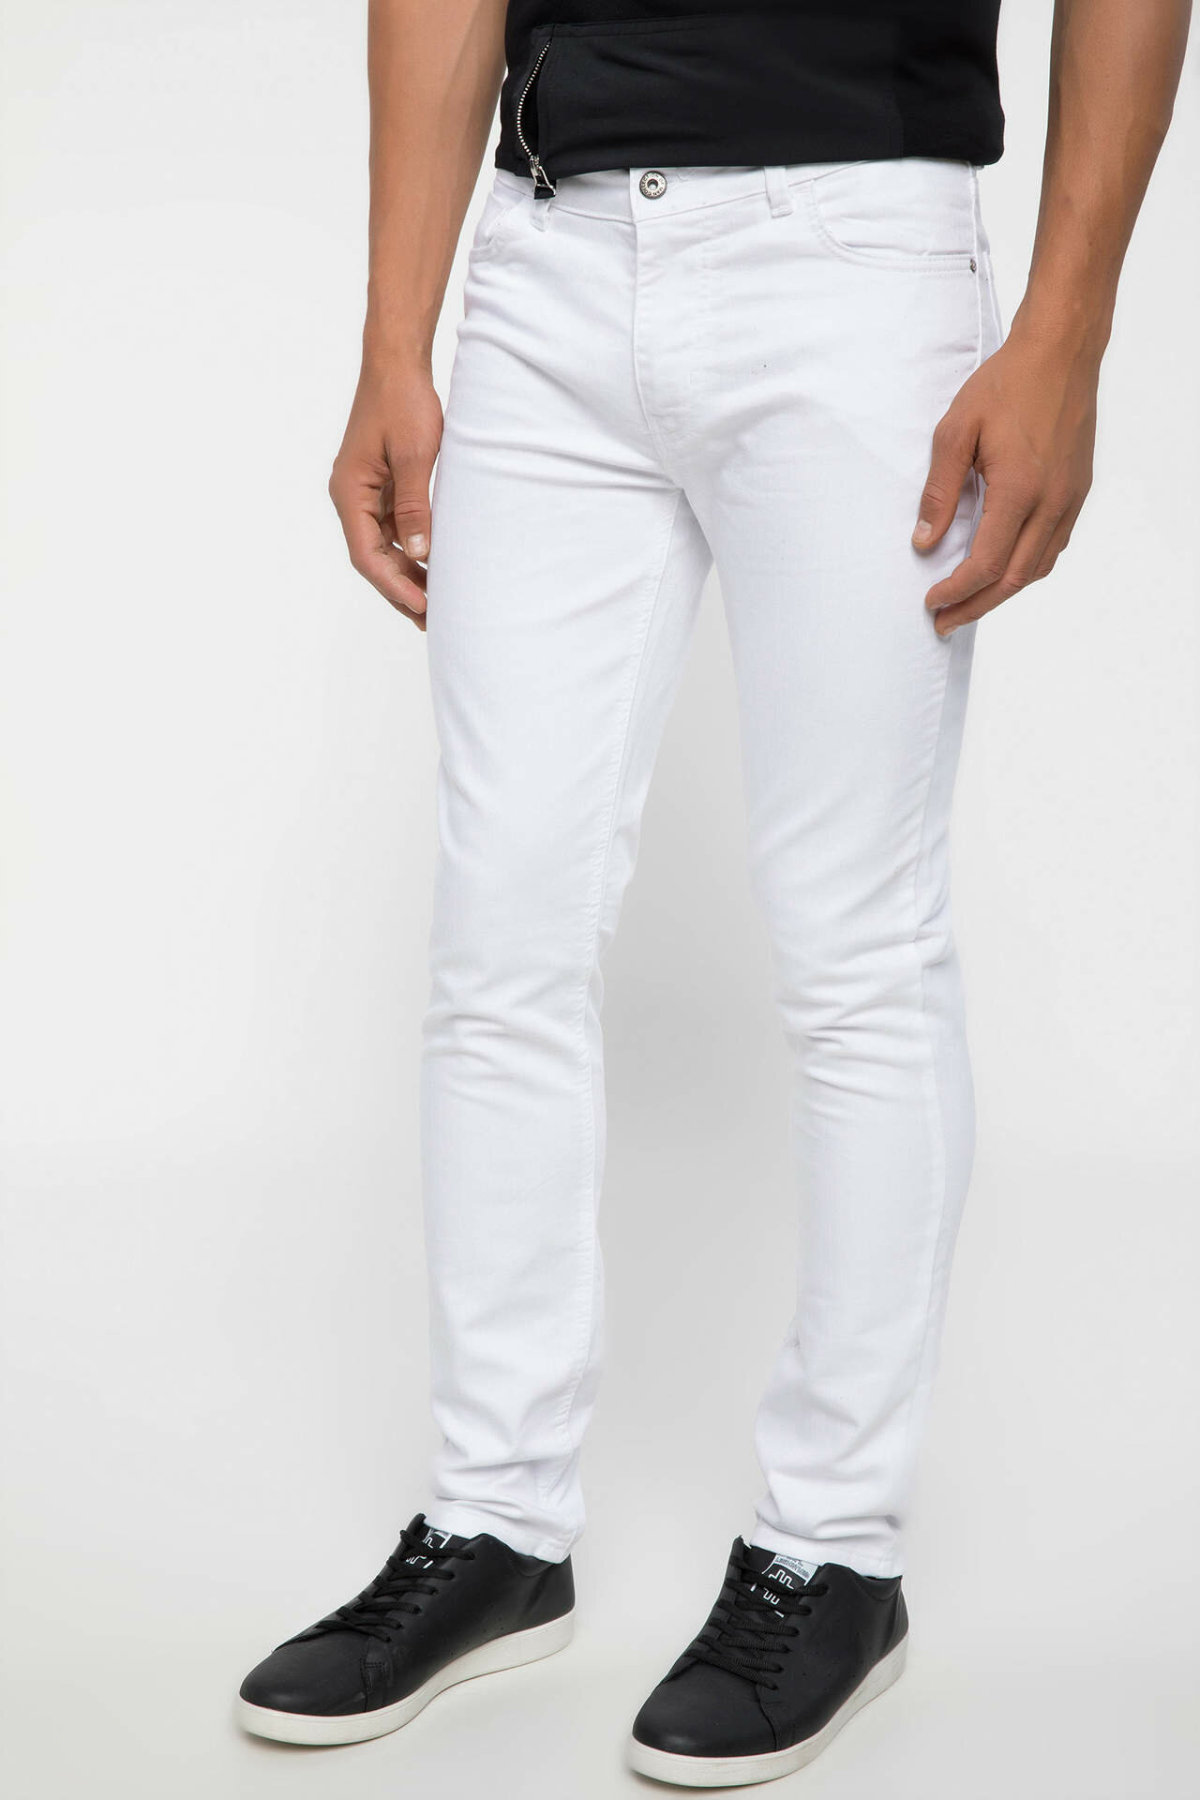 DeFacto Man Summer Breathable White Denim Jeans Men Casual Straight Denim Pants Male Mid-waist Strench Trousers-J6782AZ18SM